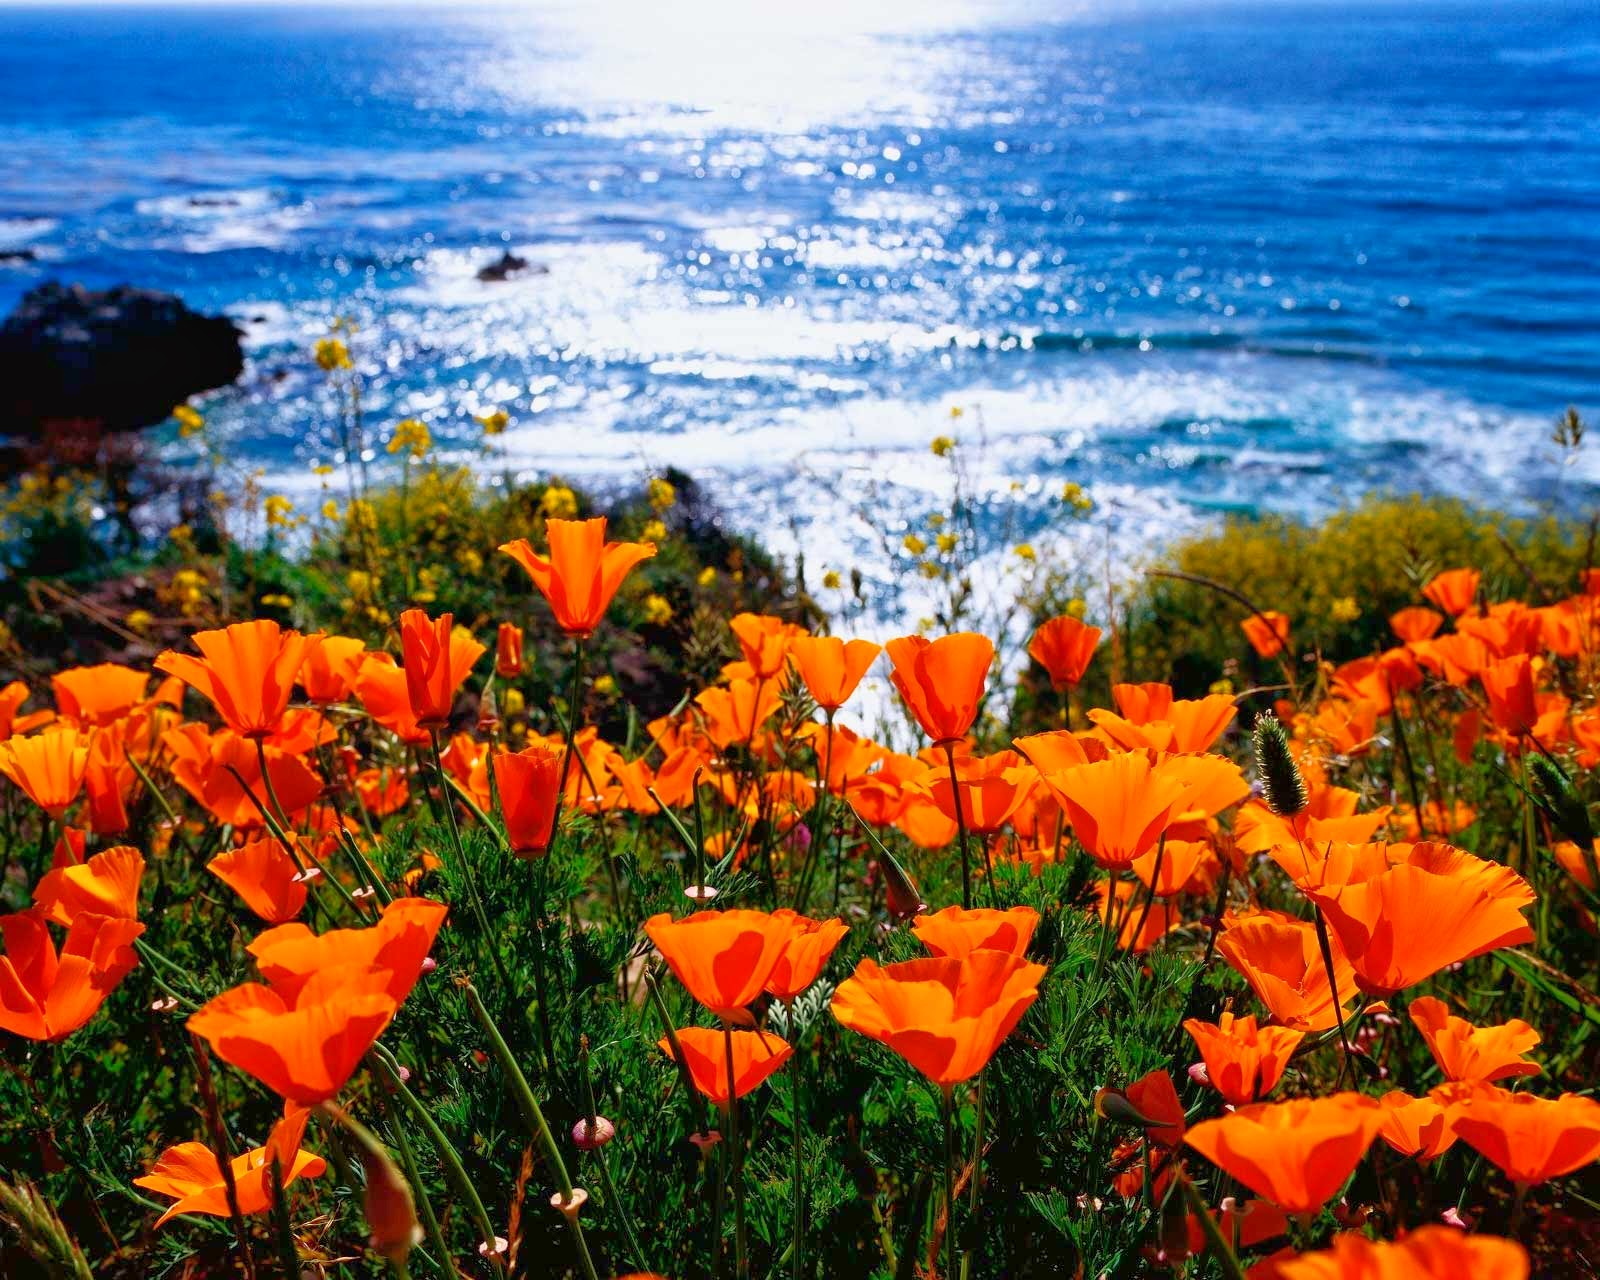 Butterflies and heart songs im still here enjoying the california our state flower the california poppy is in full bloom almost everywhere you look mightylinksfo